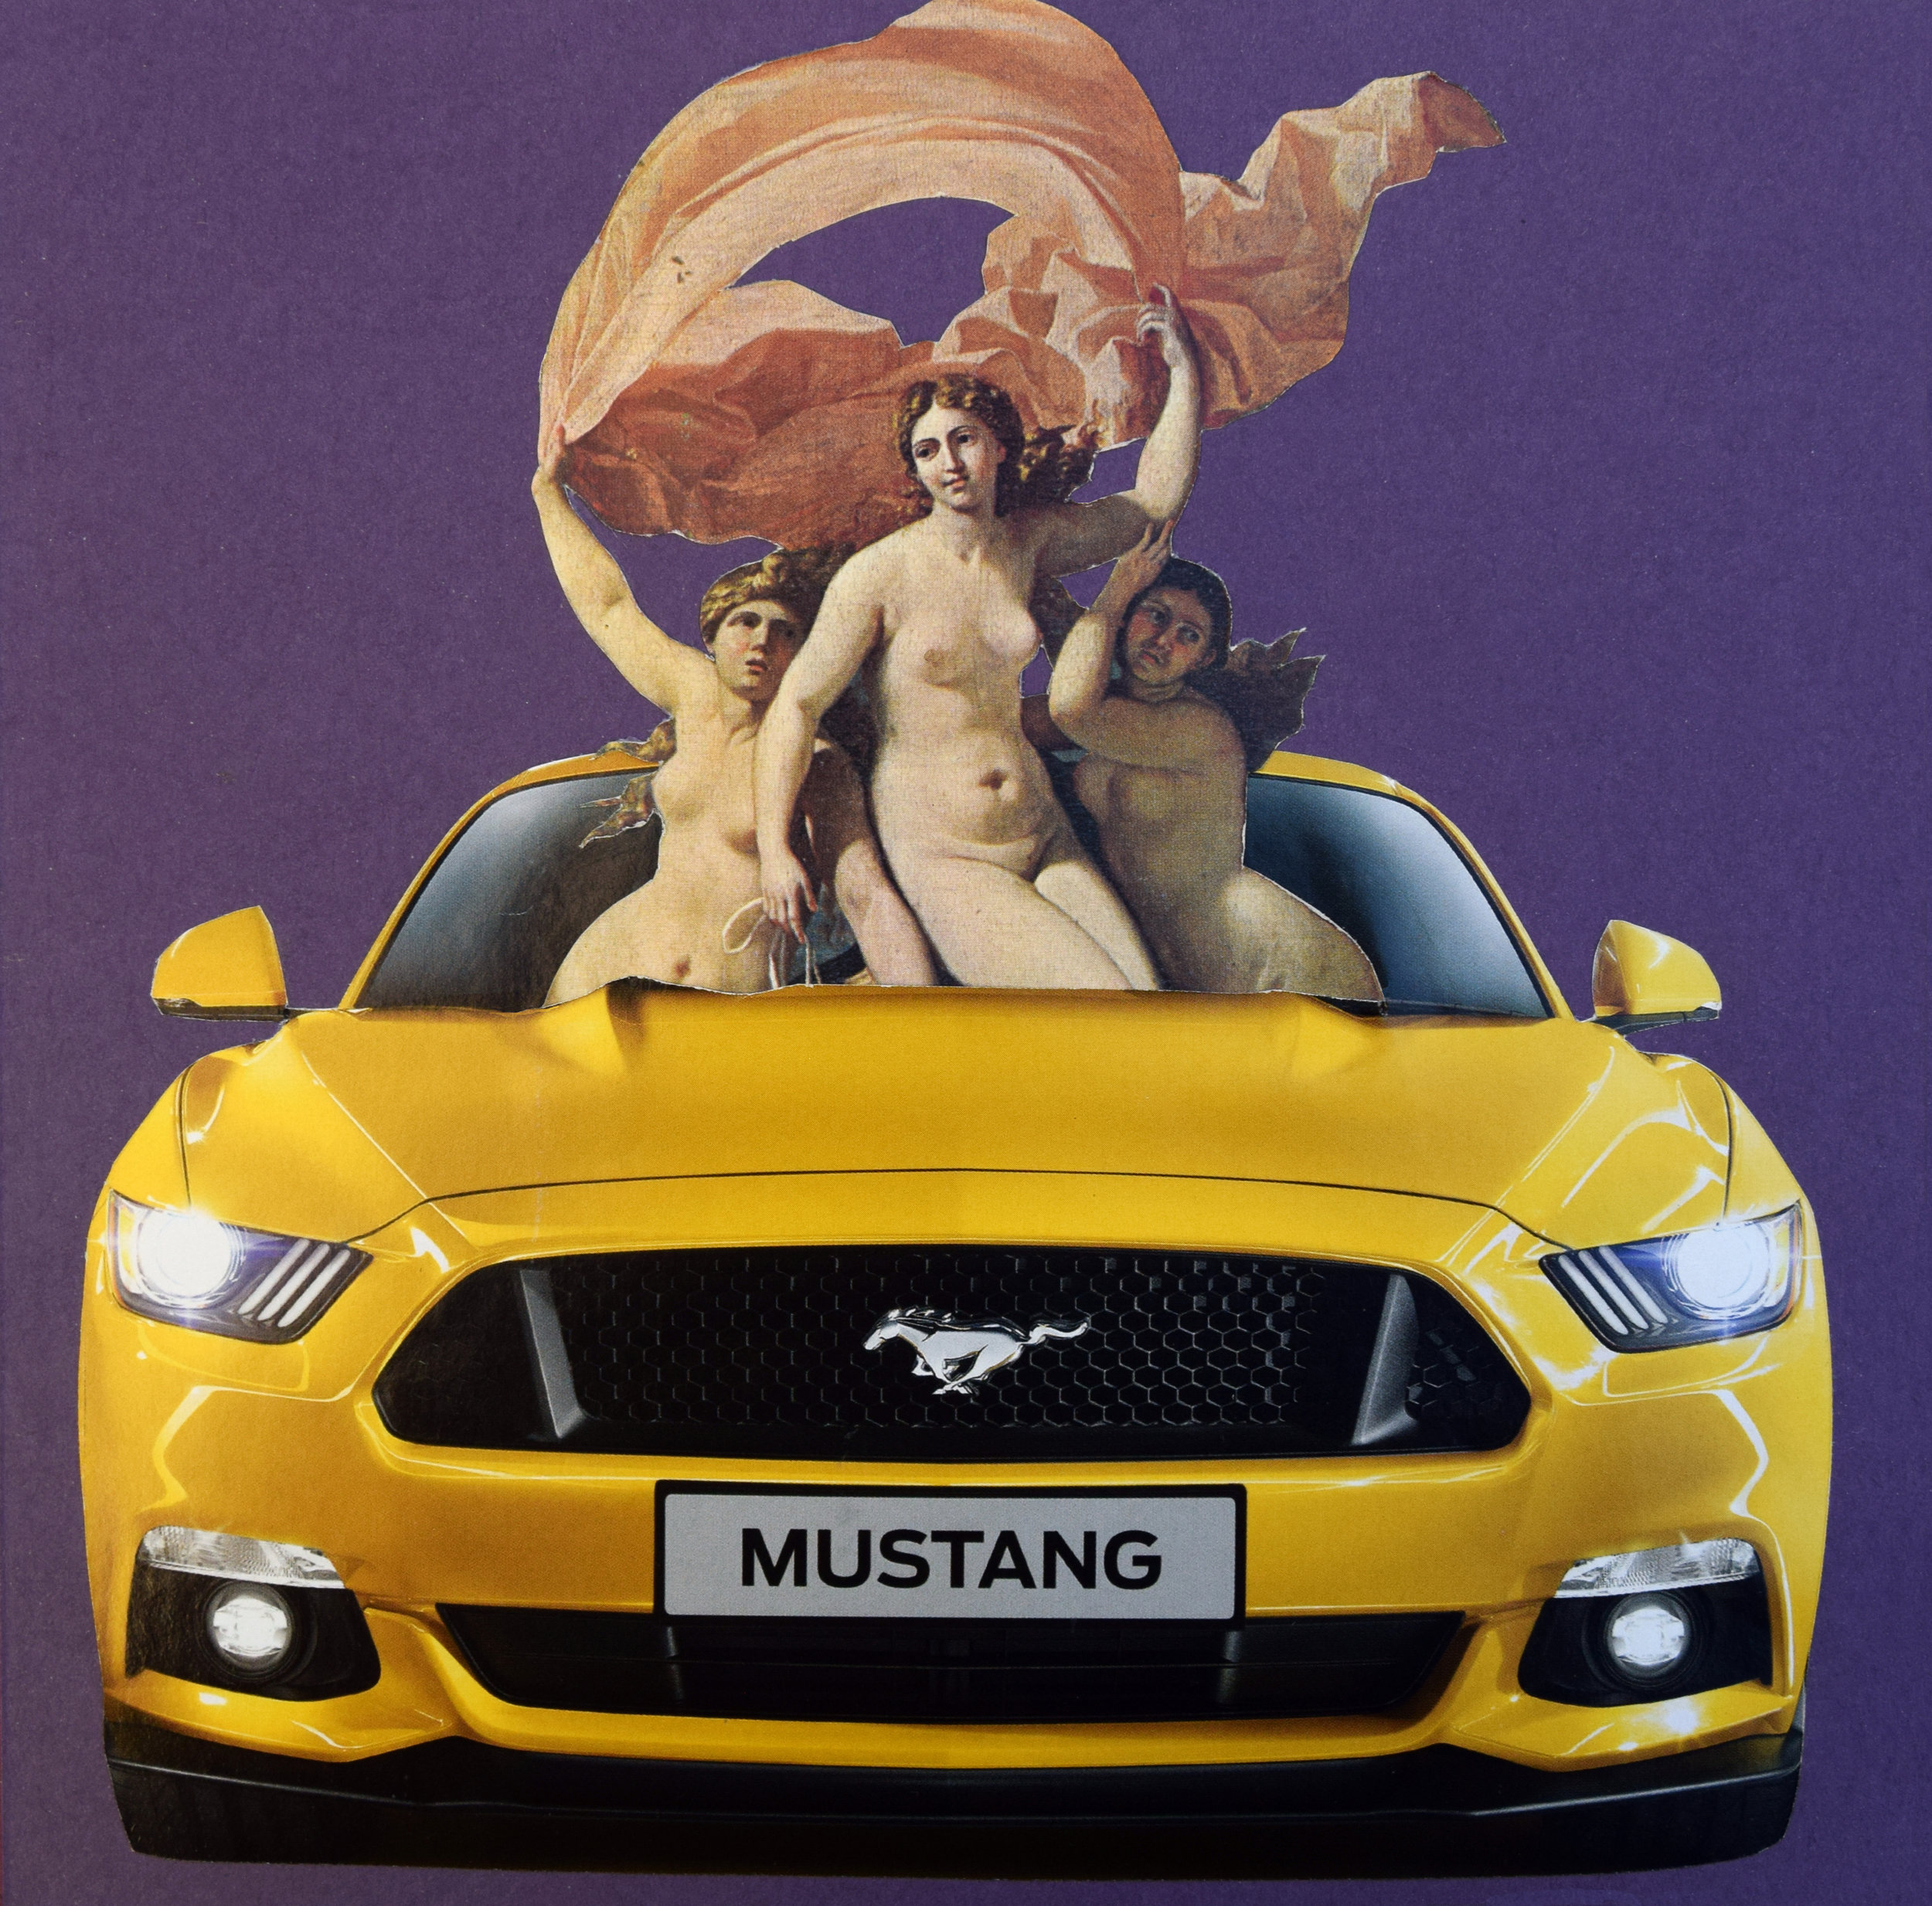 Get in girls we're going shopping  Hand Cut Paper Collage